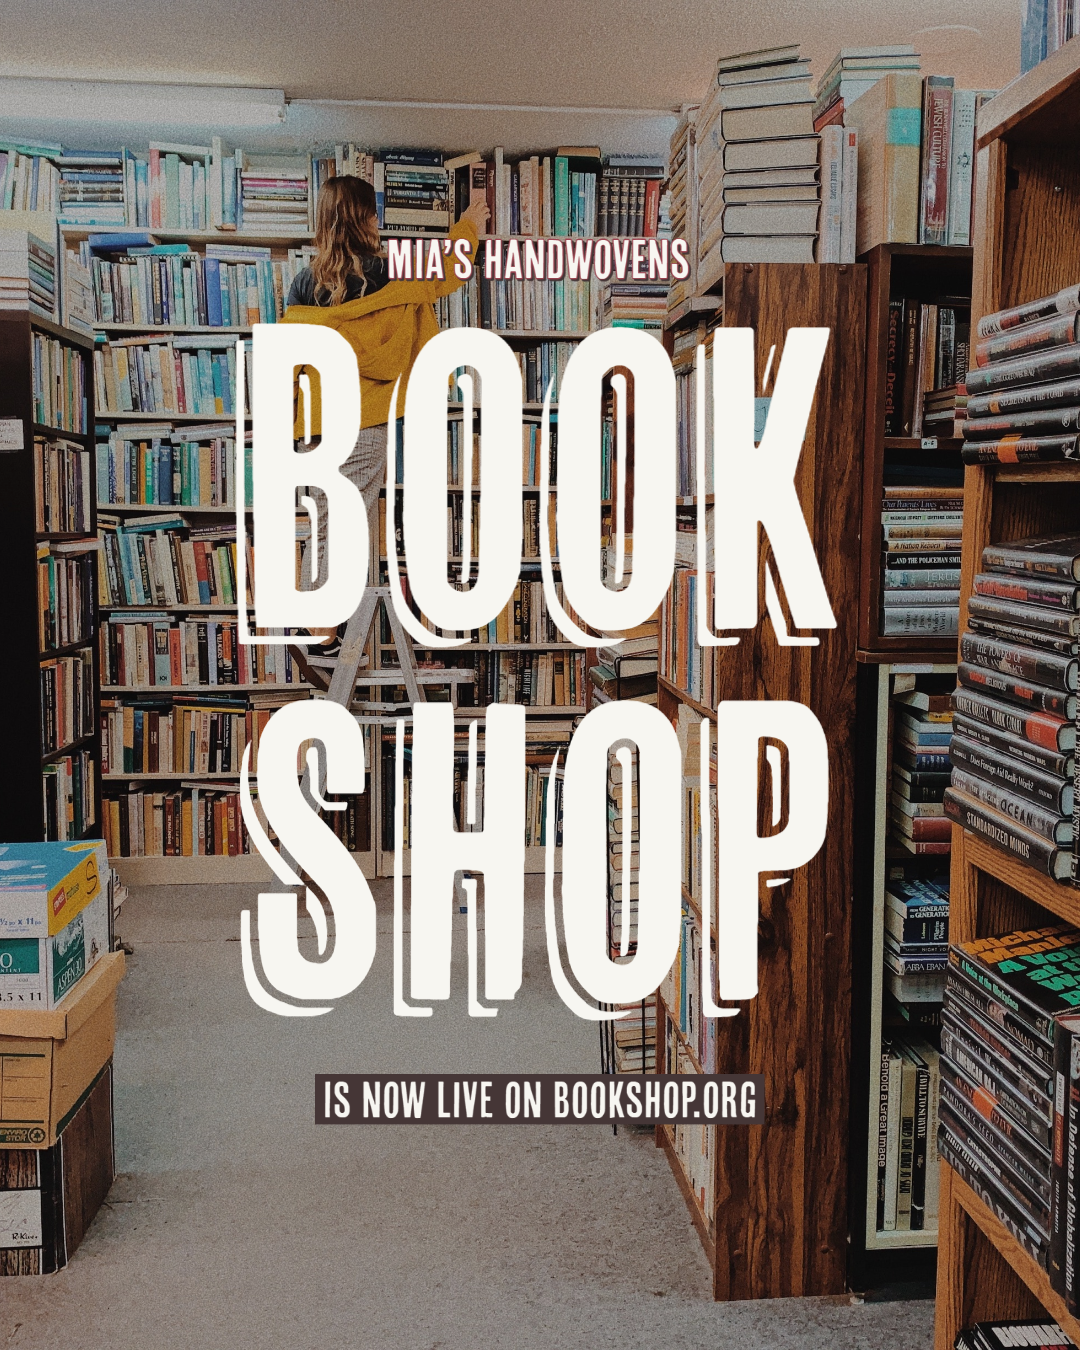 """An image of a bookstore with the words """"Mia's Handwovens Book Shop is now live on bookshop.org"""" overlaid. https://bookshop.org/shop/MiasHandwovens"""